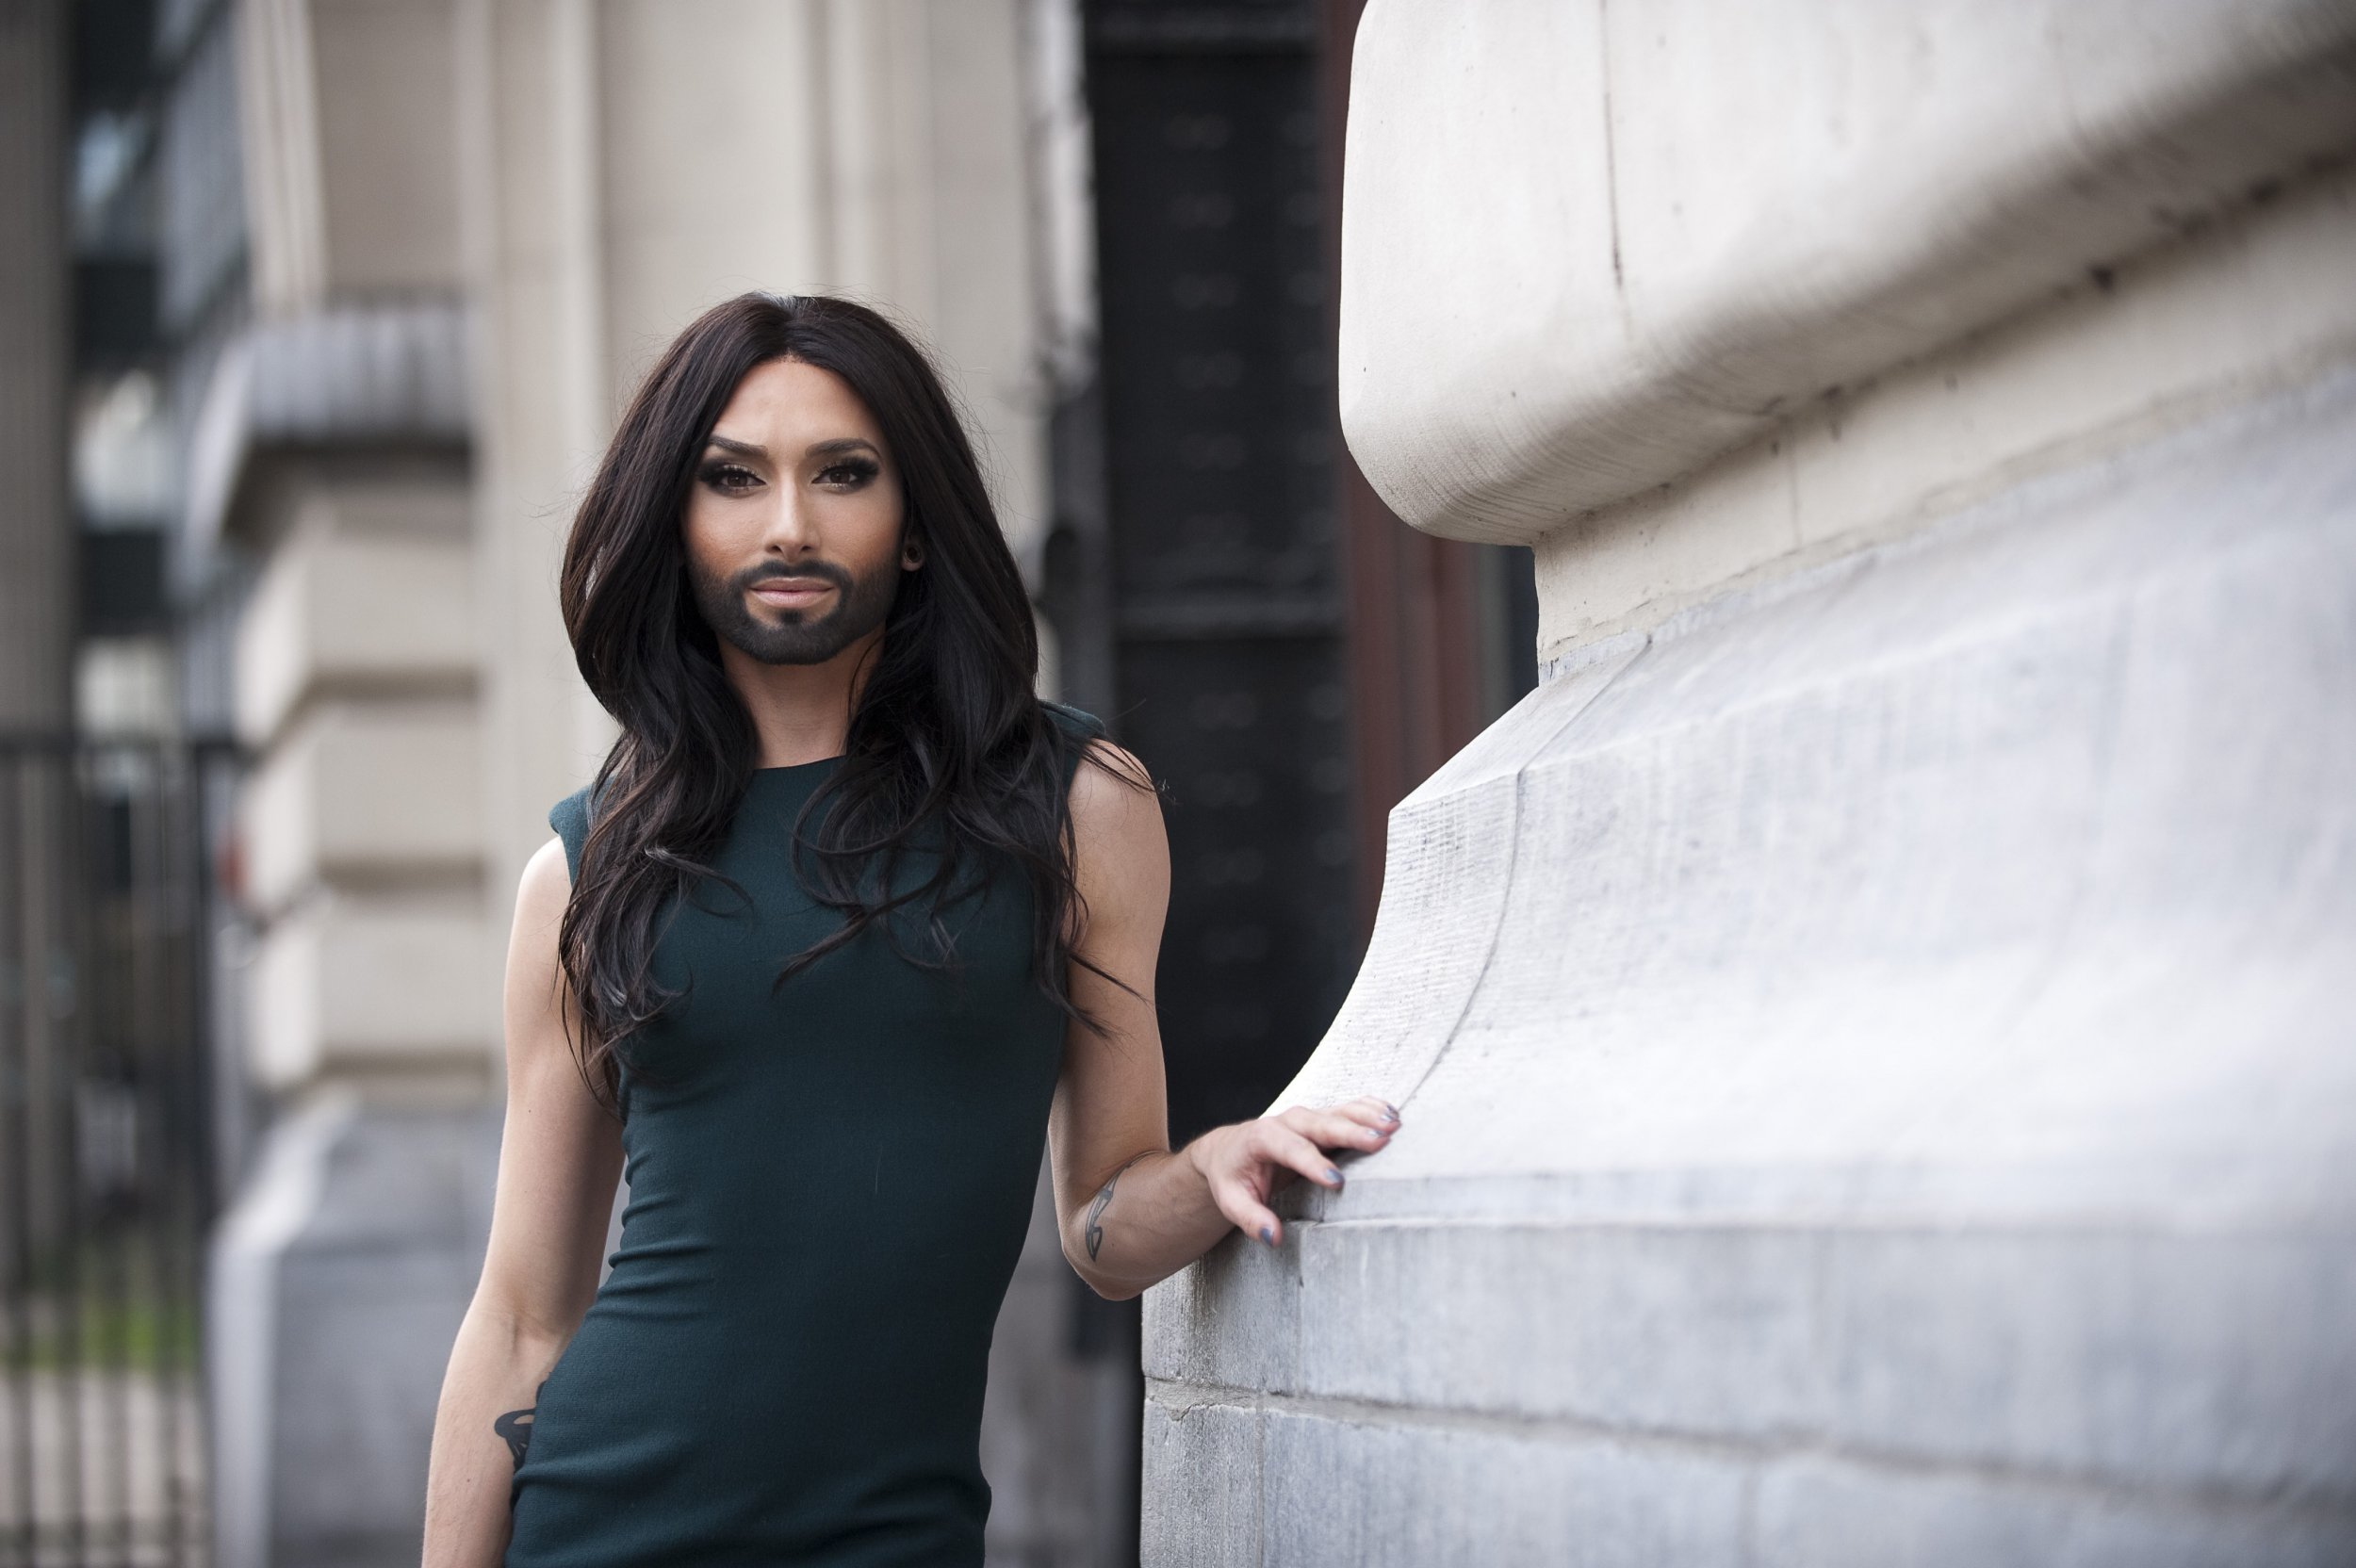 GHENT, BELGIUM - JANUARY 18: (FRANCE OUT,BELGIUM OUT,NETHERLANDS OUT) Singer Conchita Wurst aka Tom Neuwirth poses in the center of Ghent, on January 18, 2014 in Ghent, Belgium. He will be representing Austria in the Eurovision Song Contest 2014 in Copenhagen on May 10,2014. (Photo by Florian Van Eenoo/Photonews via Getty Images)